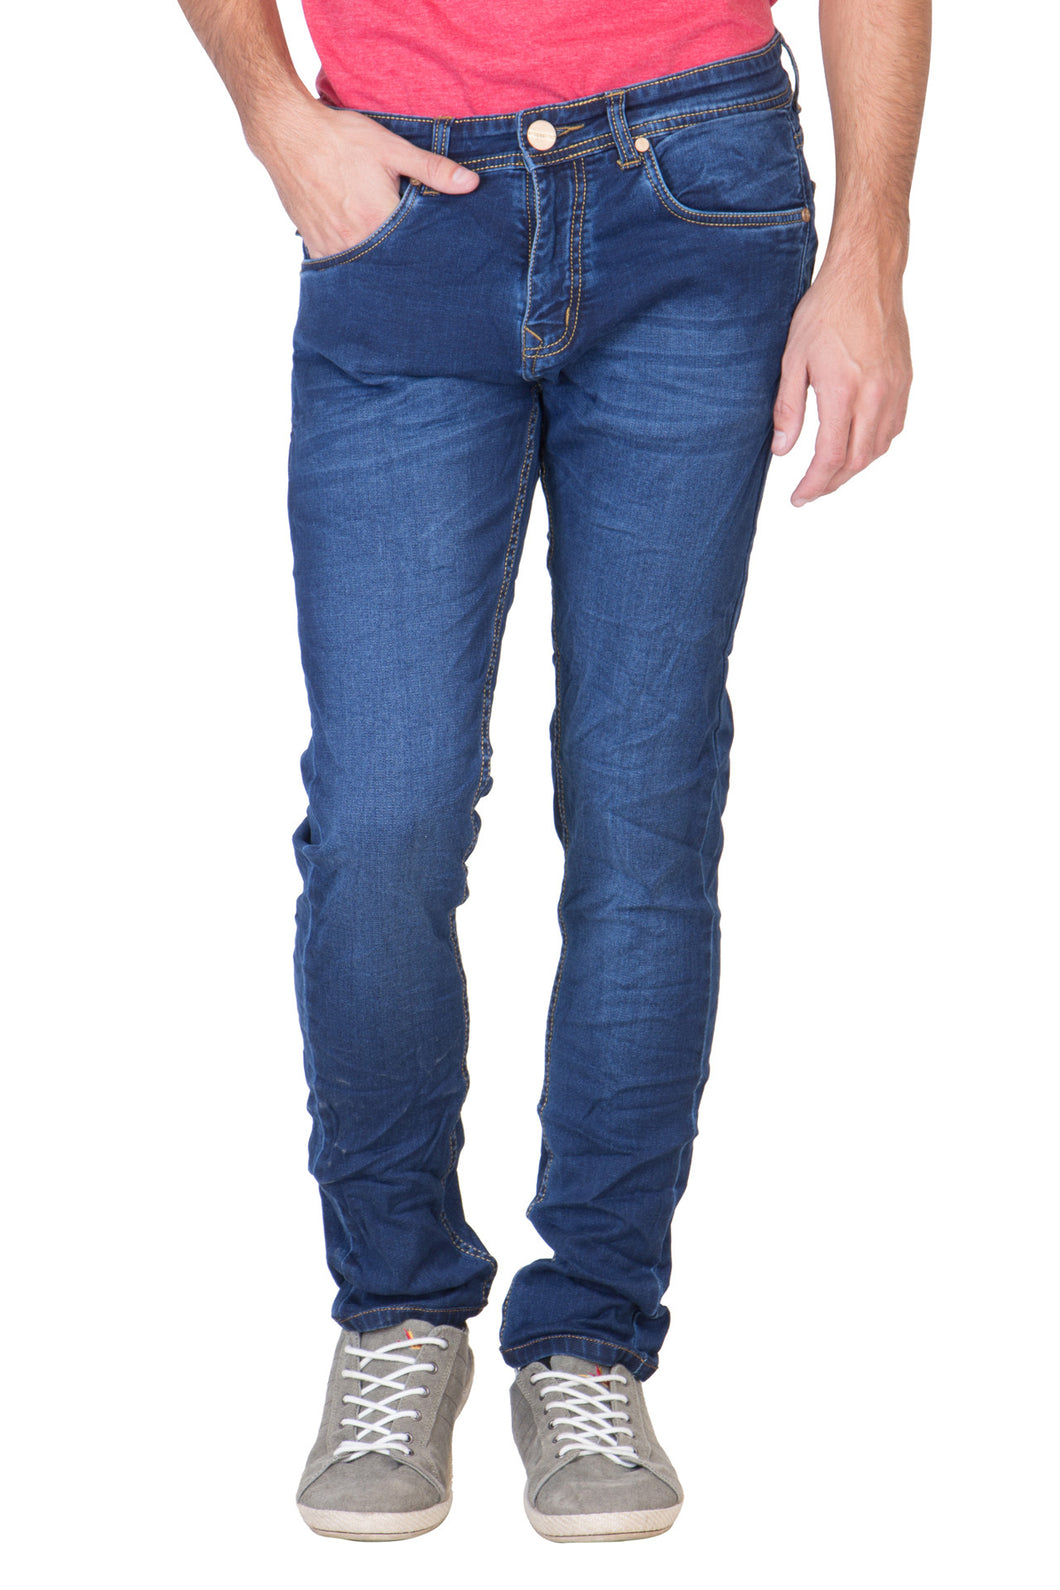 KROSSSTITCH Men's Straight Fit Denim Blue Jeans